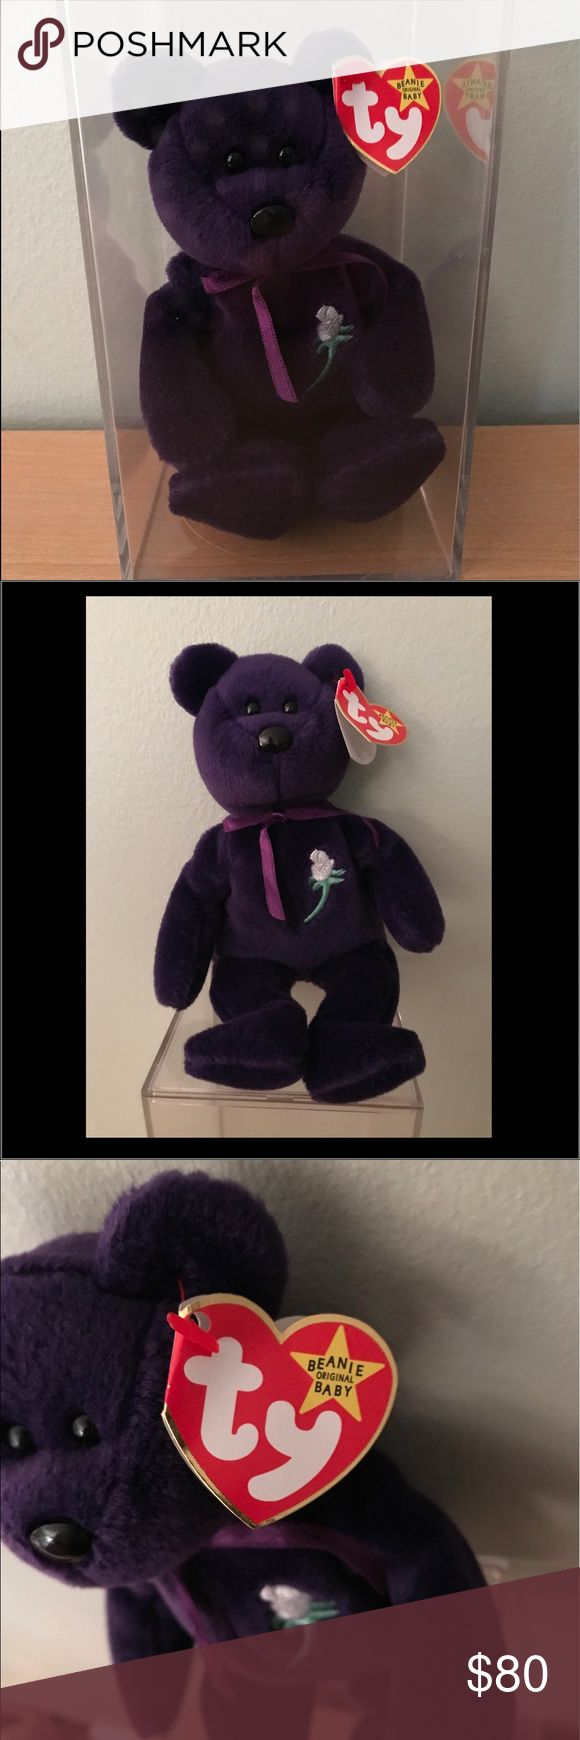 RARE Princess Diana Beanie Baby This Princess Diana bear has been in her box since I bought her in 1997. Mint condition! TY Other